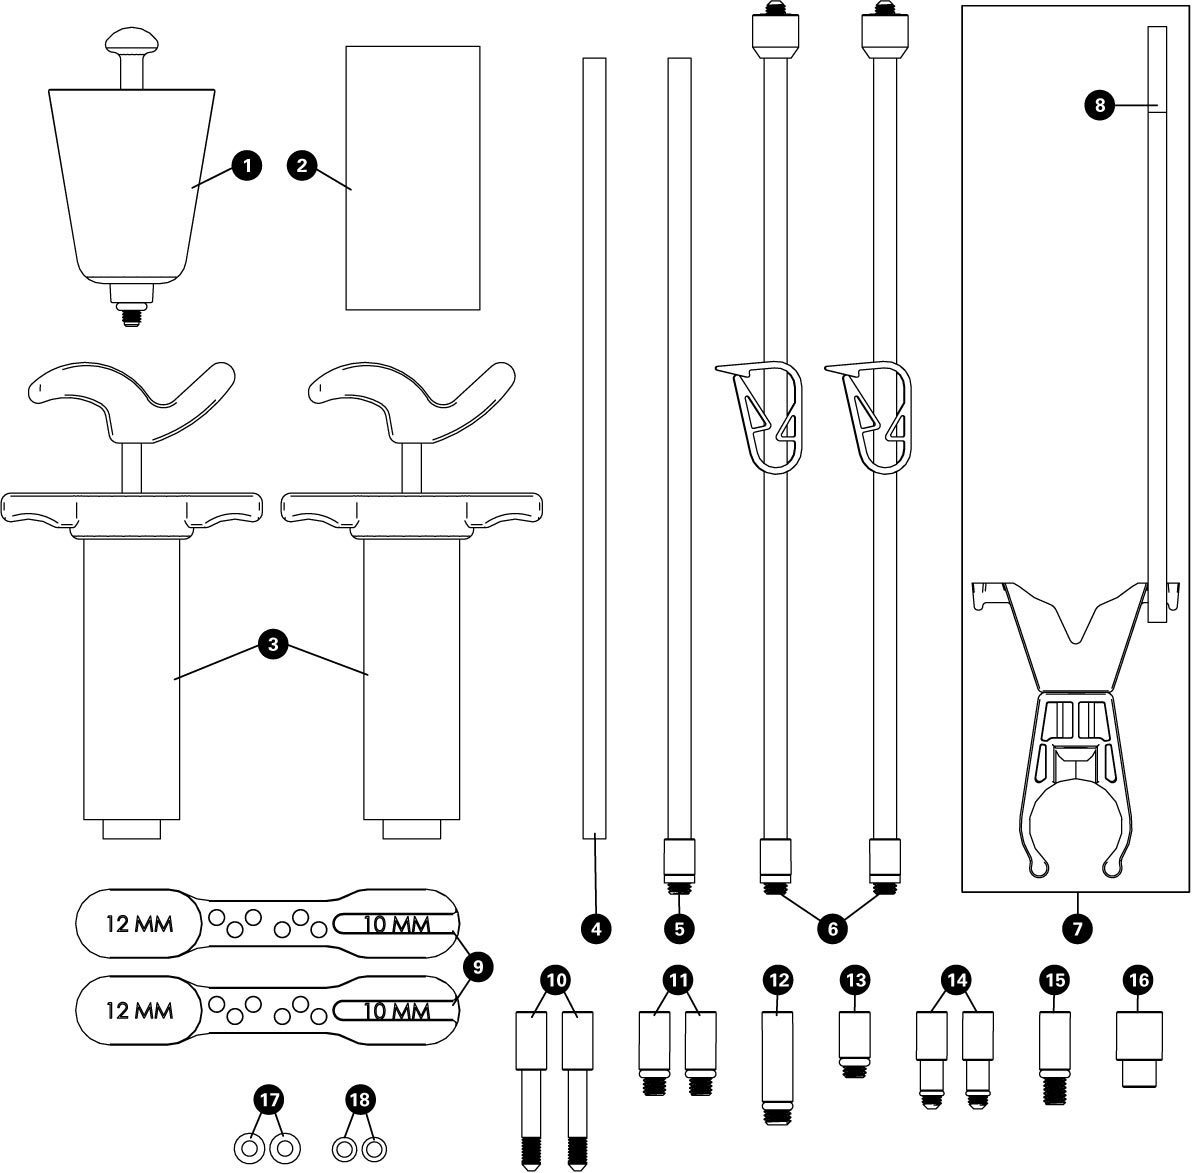 Parts diagram for BKM-1 Hydraulic Brake Bleed Kit — Mineral, click to enlarge